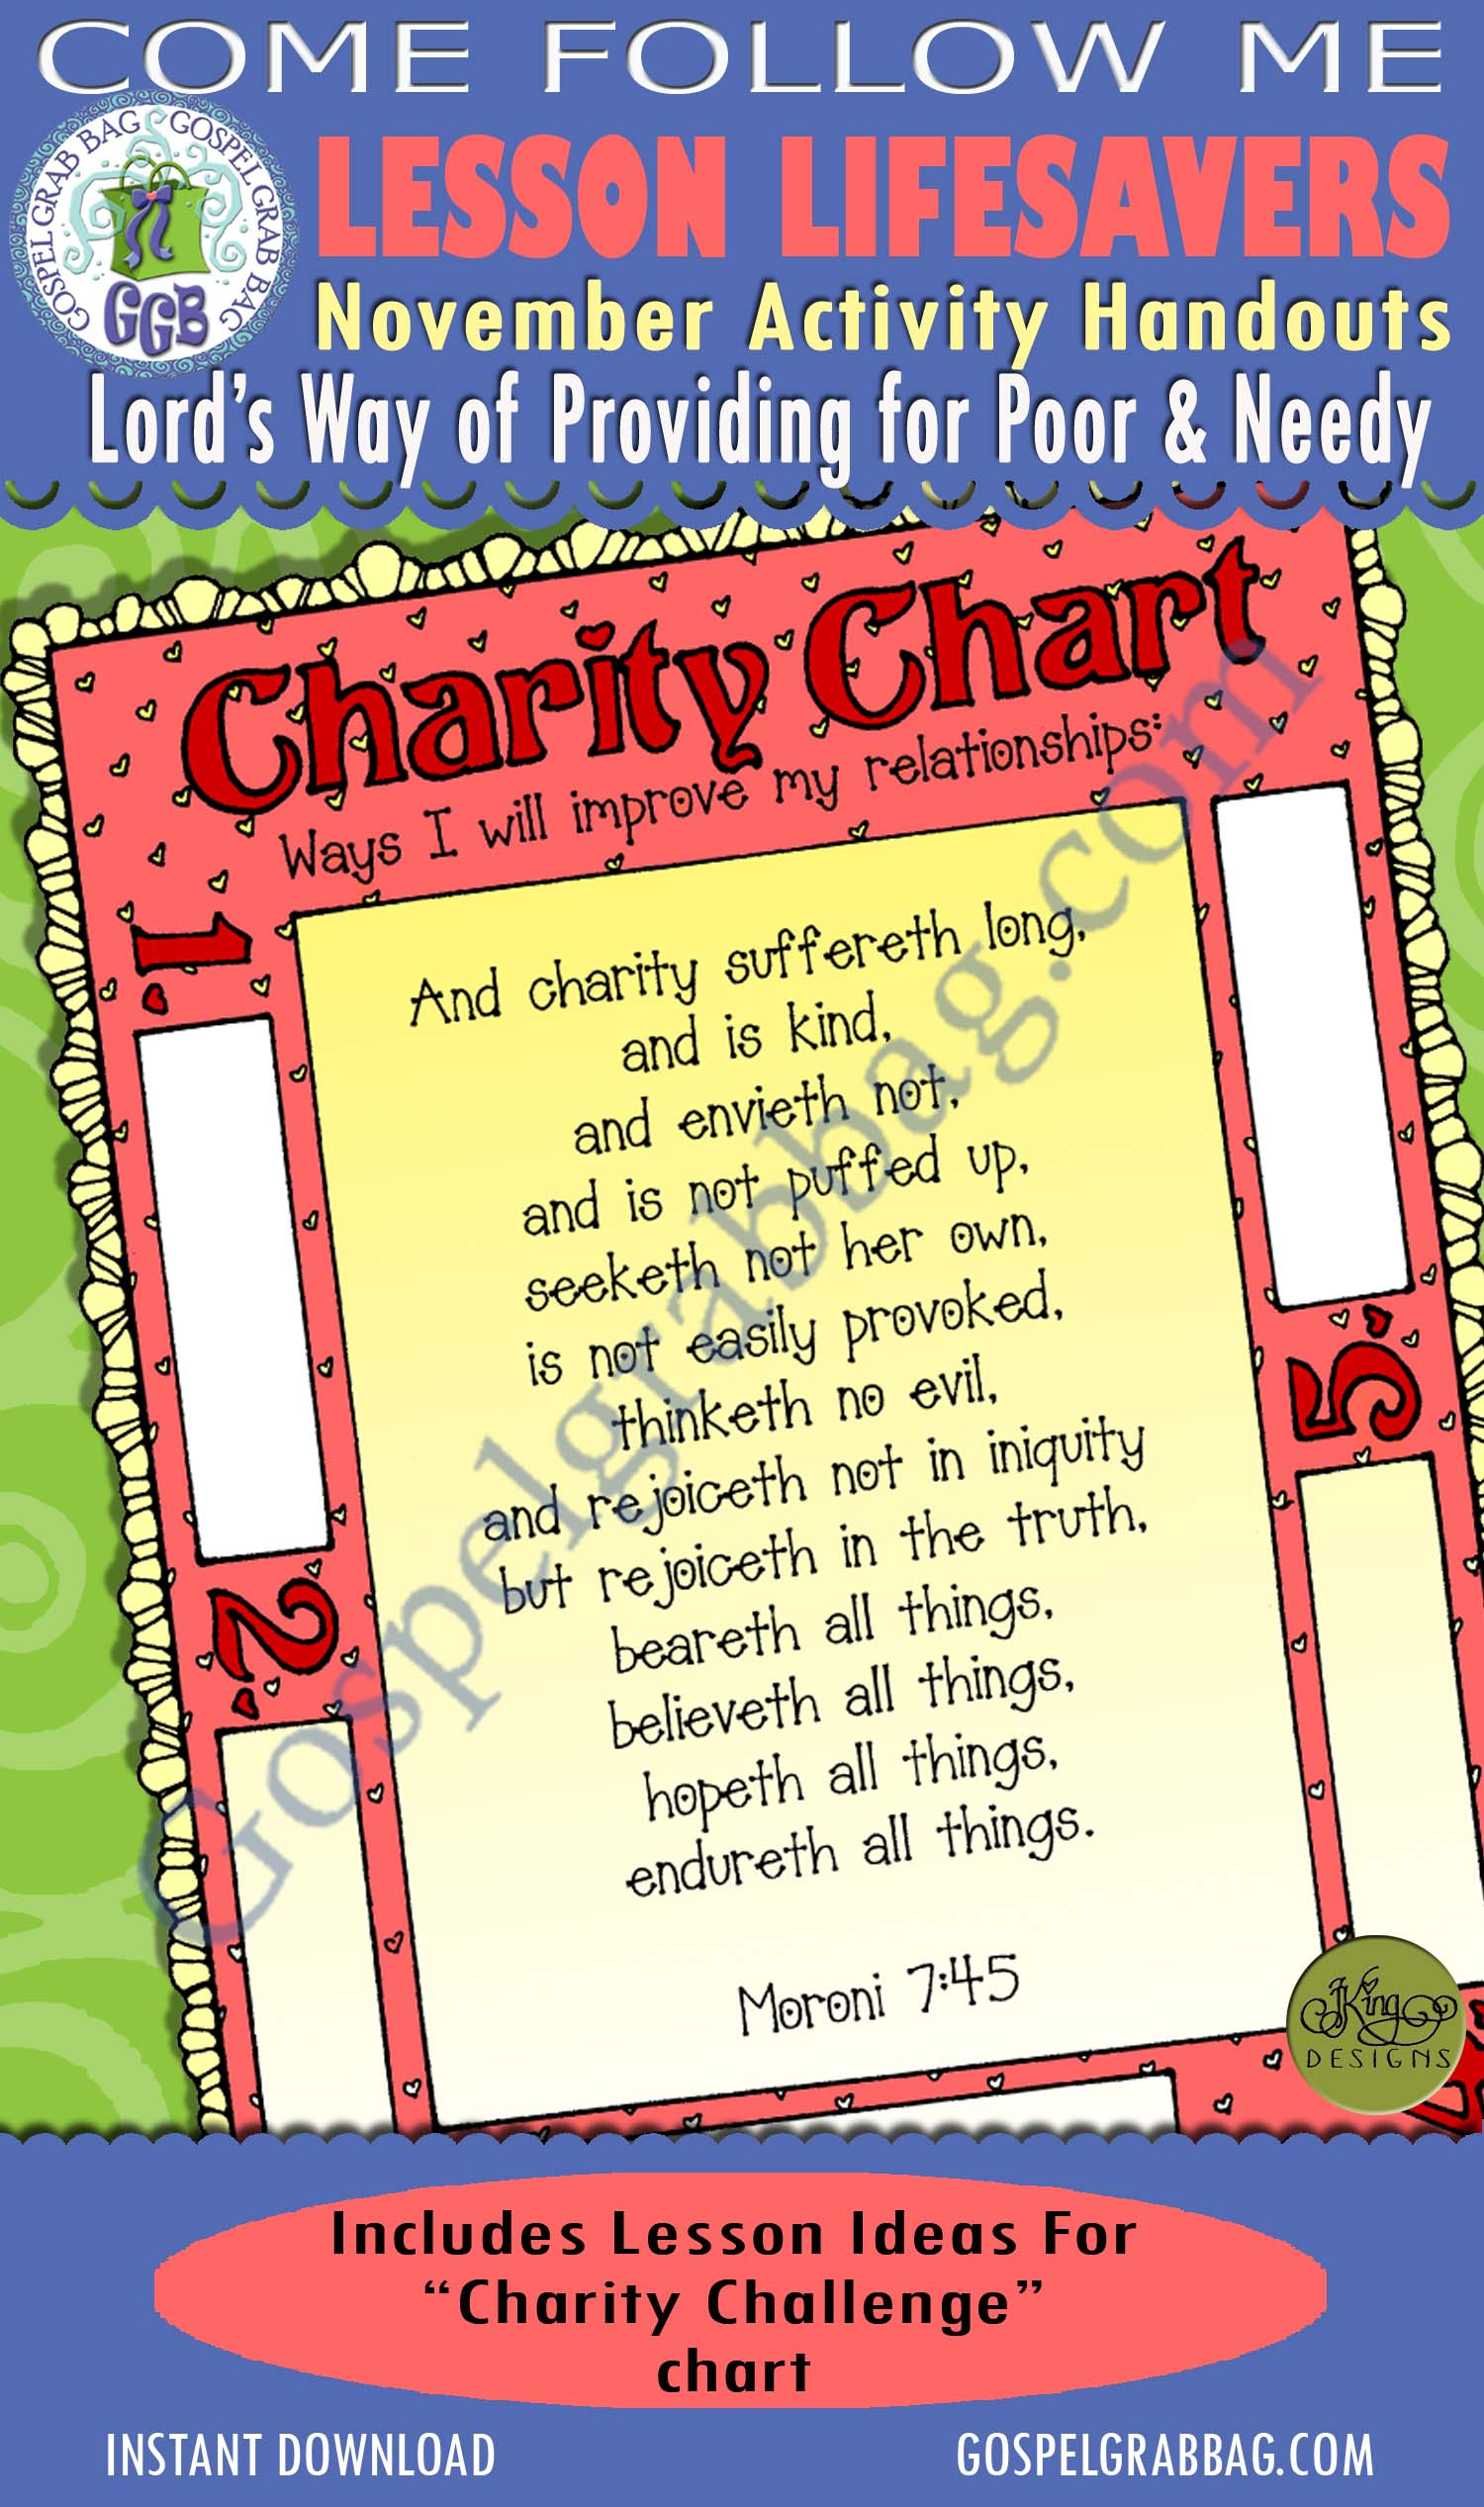 "$1.75 November Lesson 6 - Come Follow Me ""What is the Lord's way of providing for the poor and needy?"" ACTIVITY: Charity Challenge chart"